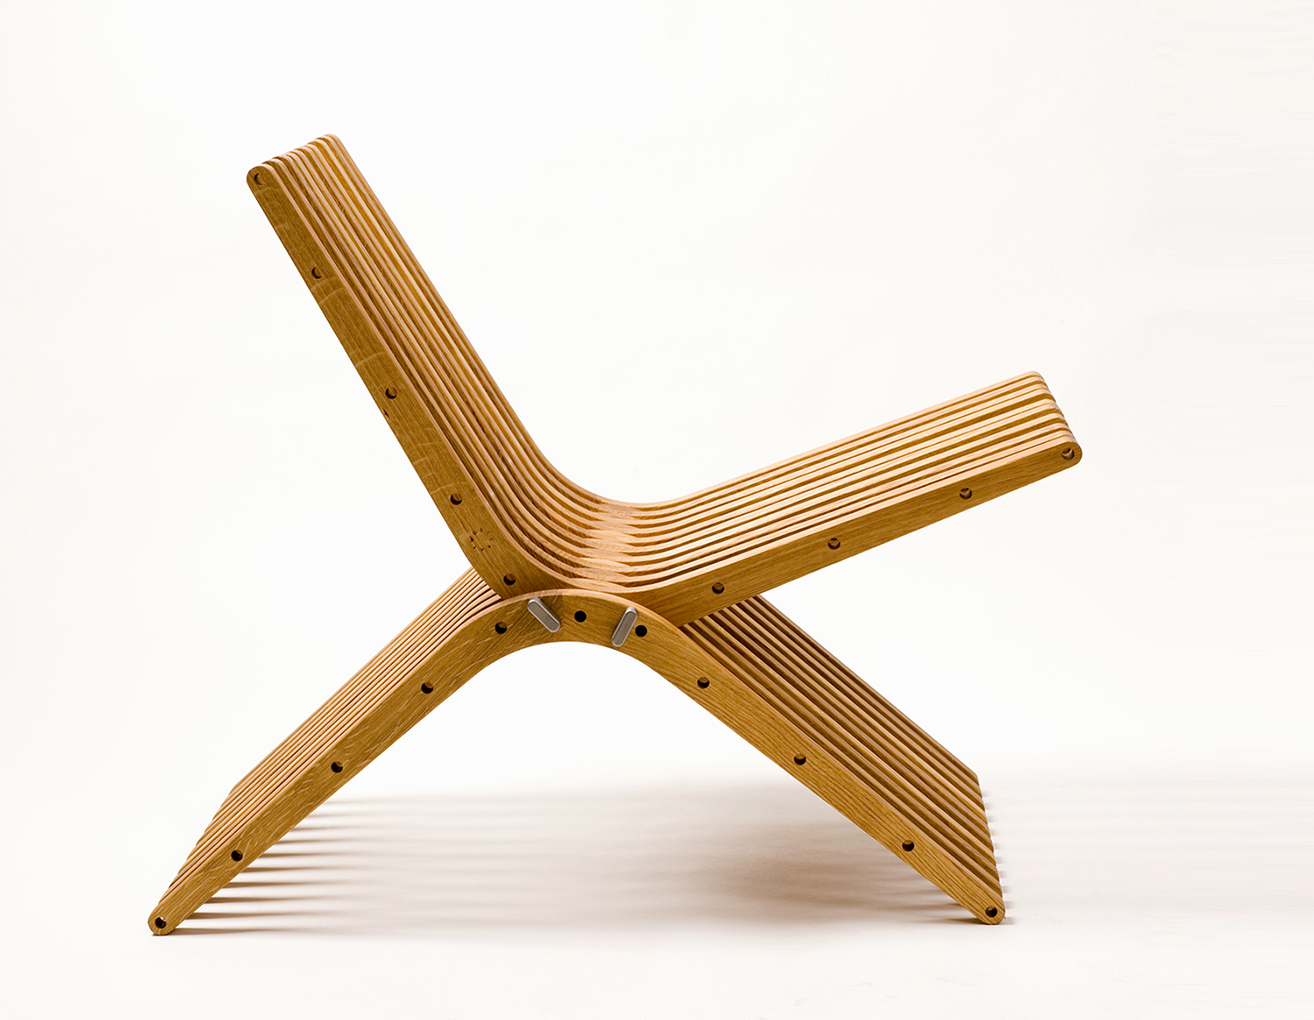 boomerang • 100% recyclable wood